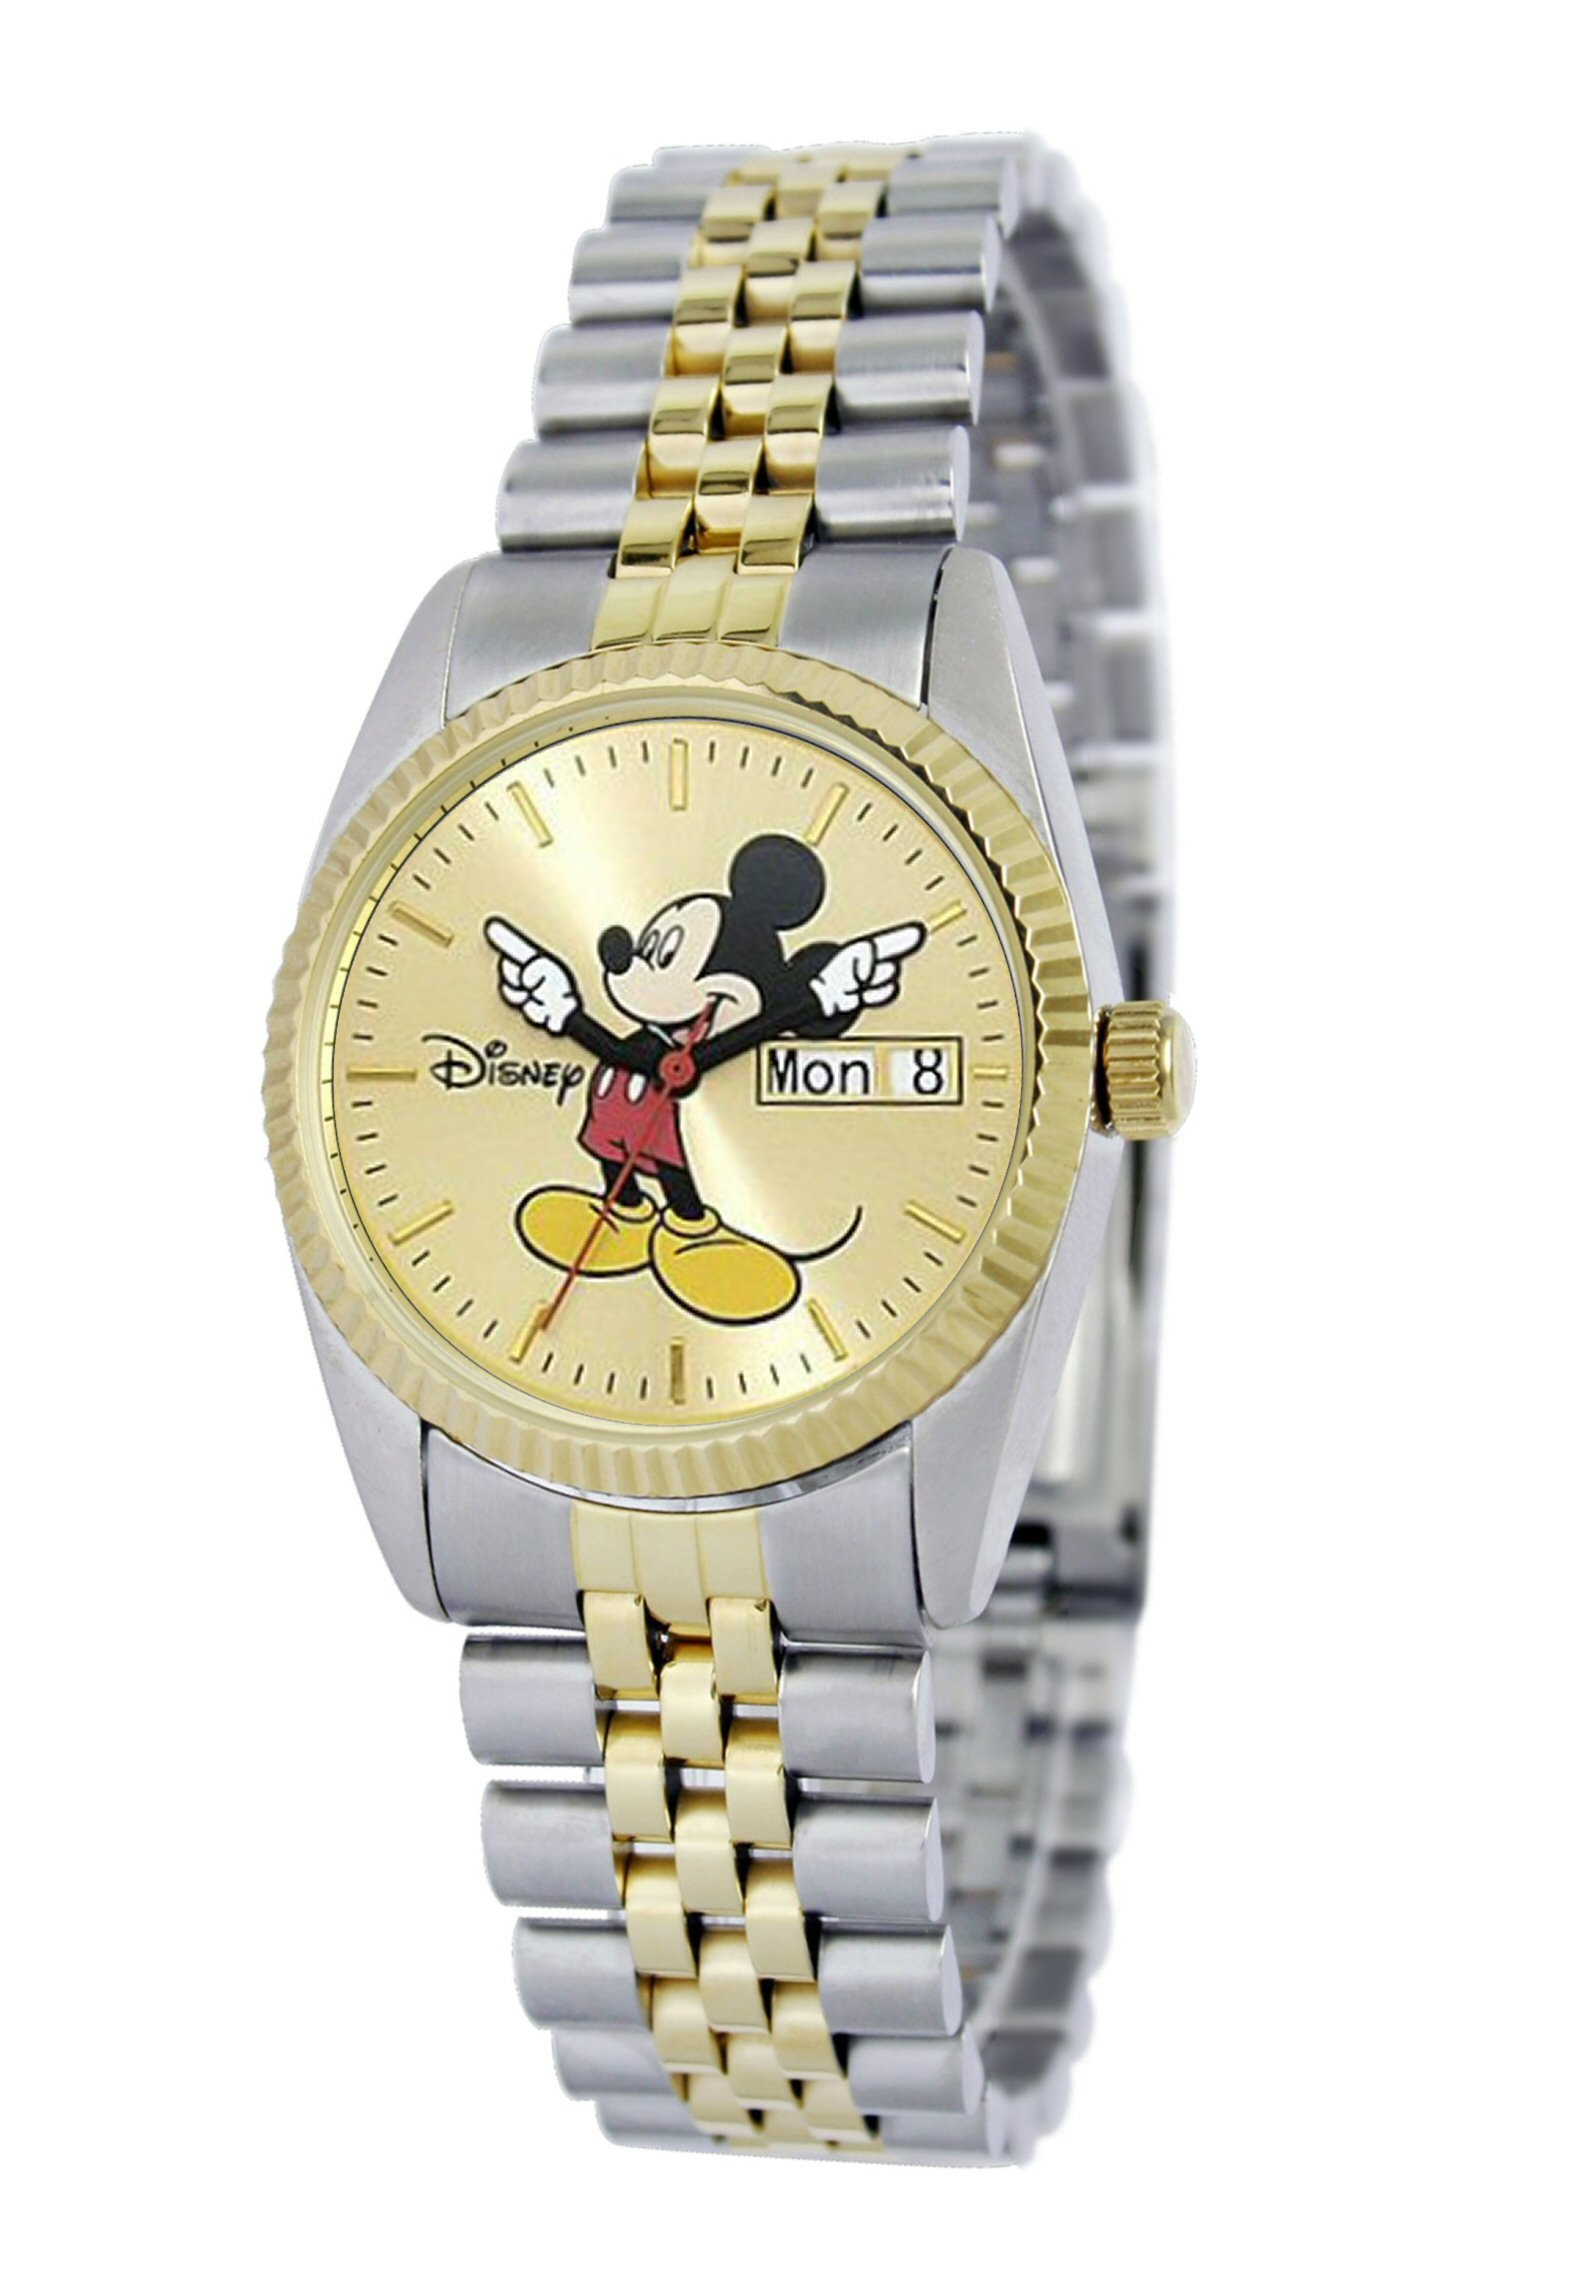 Disney Men's MM0060 Two-Tone Mickey Mouse Watch with Day and Date Movement by Ewatchfactory (Image #2)